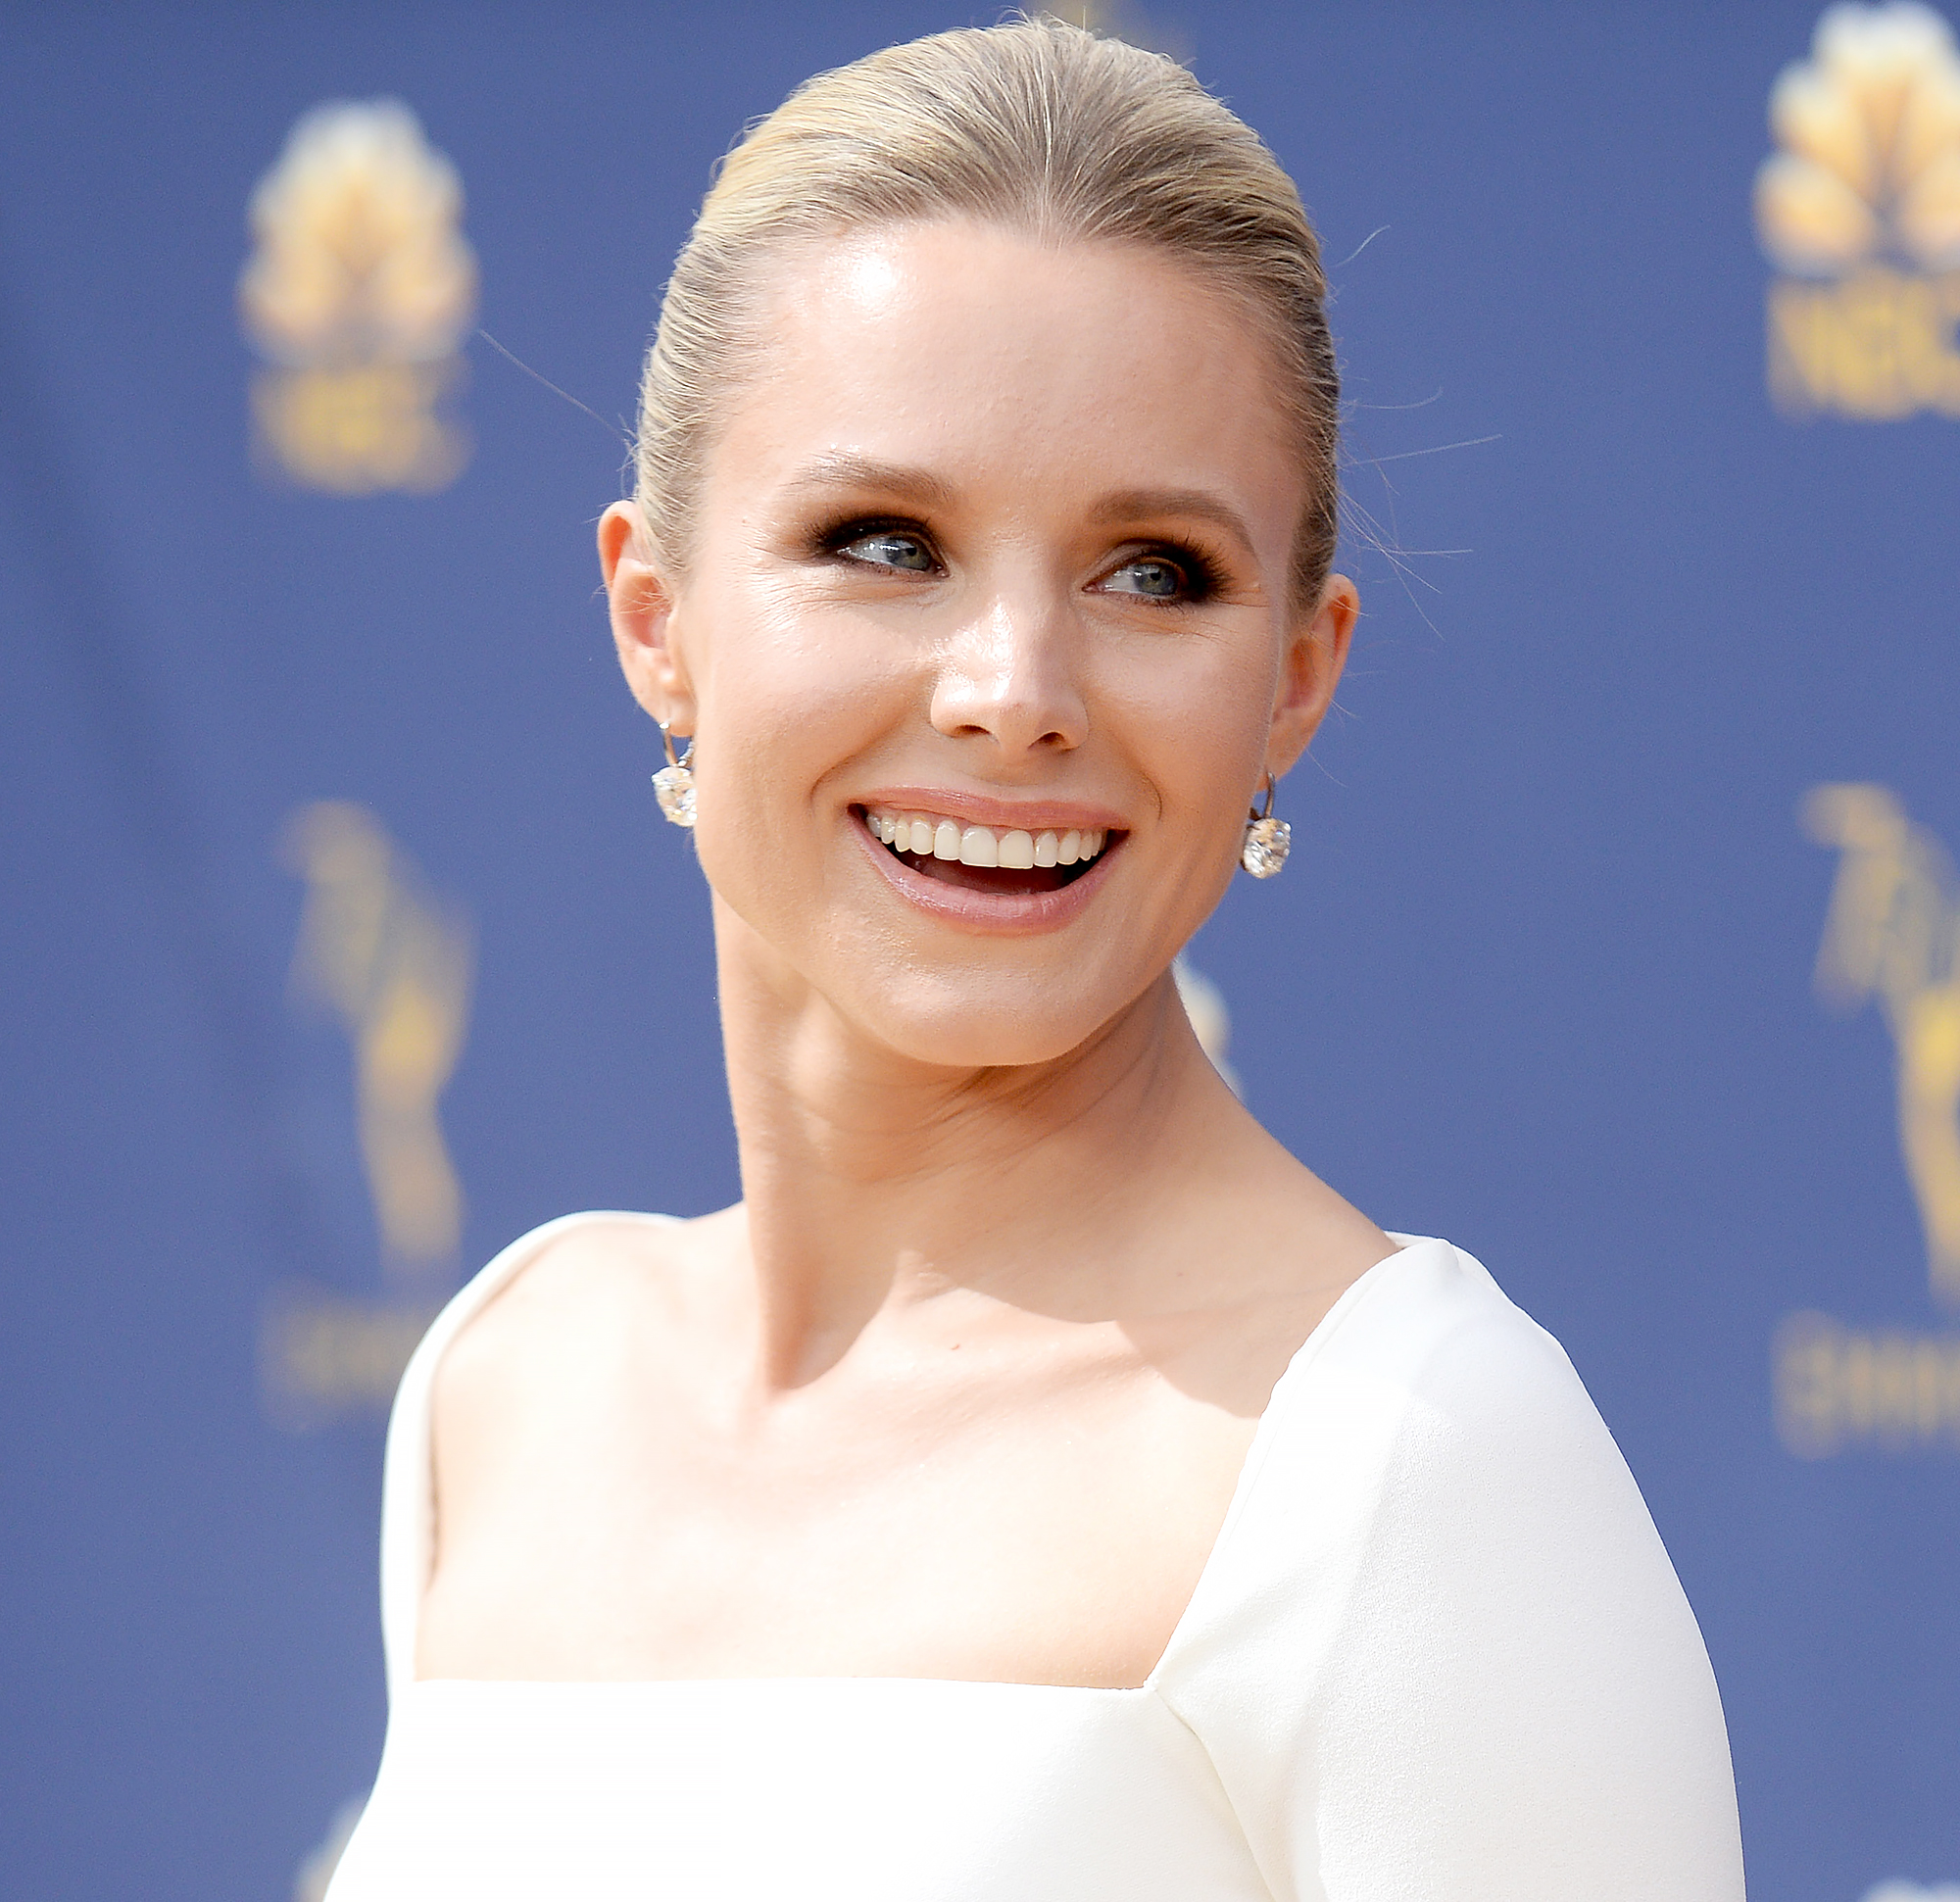 Kristen-Bell-Thought-Her-Water-Broke-When-She-Peed-Her-Pants-While-Pregnant